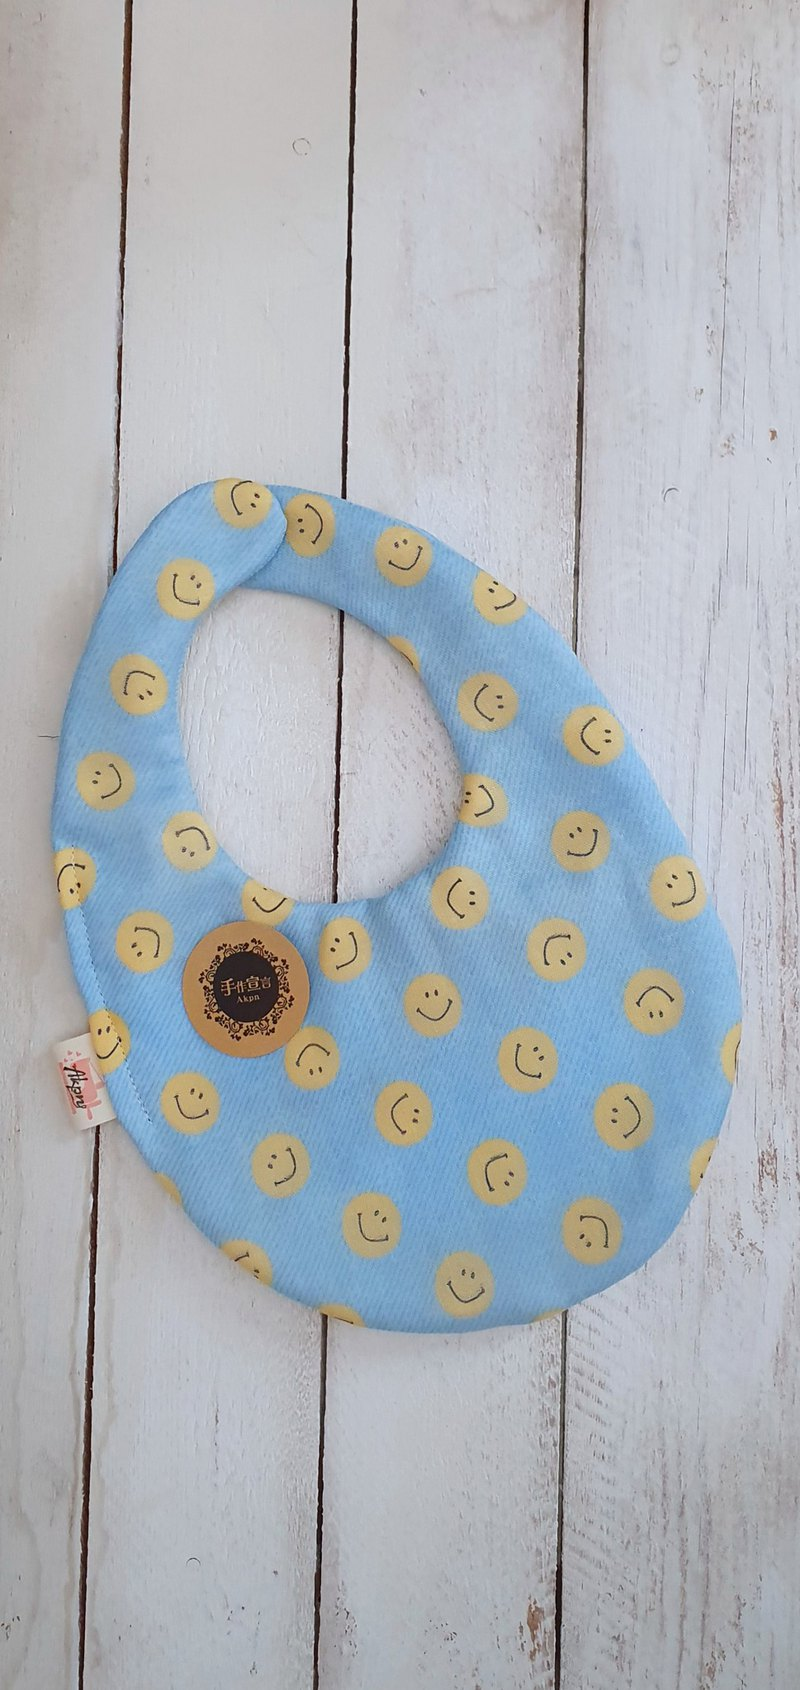 Smiling denim-Yae yarn 100% cotton double-sided egg-shaped bib. Saliva